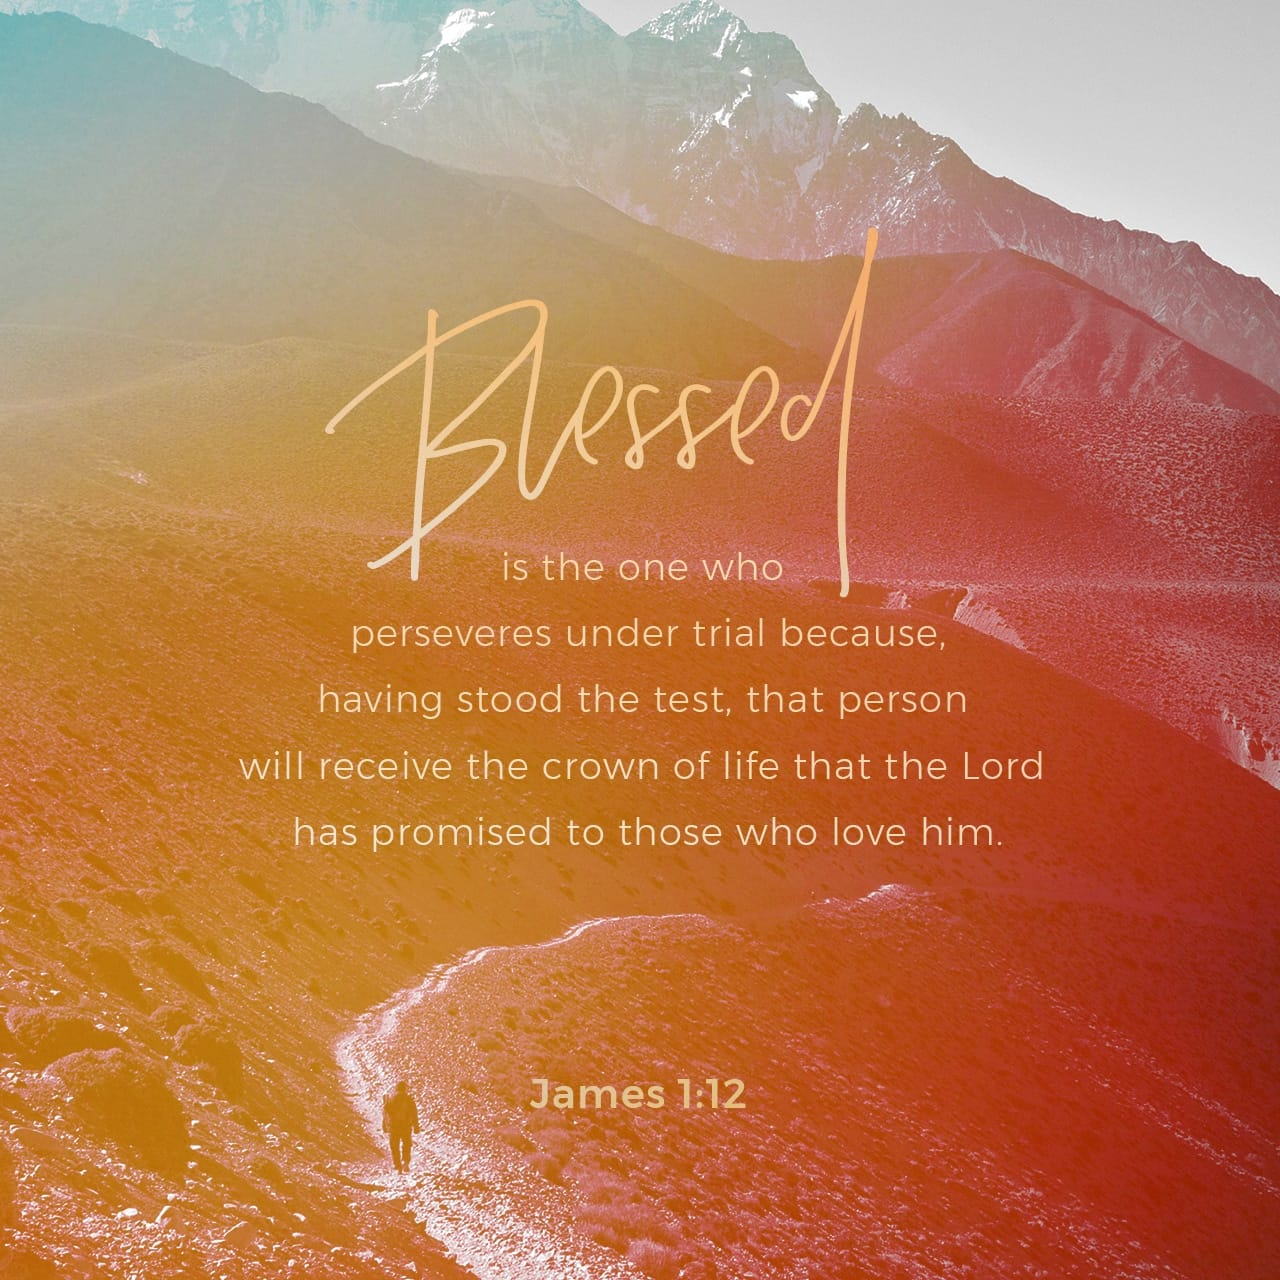 James 1:8-12 since he is a double-minded individual, unstable in all his ways. Now the believer of humble means should take pride in his high position. But the rich person's pride should be in his humiliation, bec | New English Translation (NET)